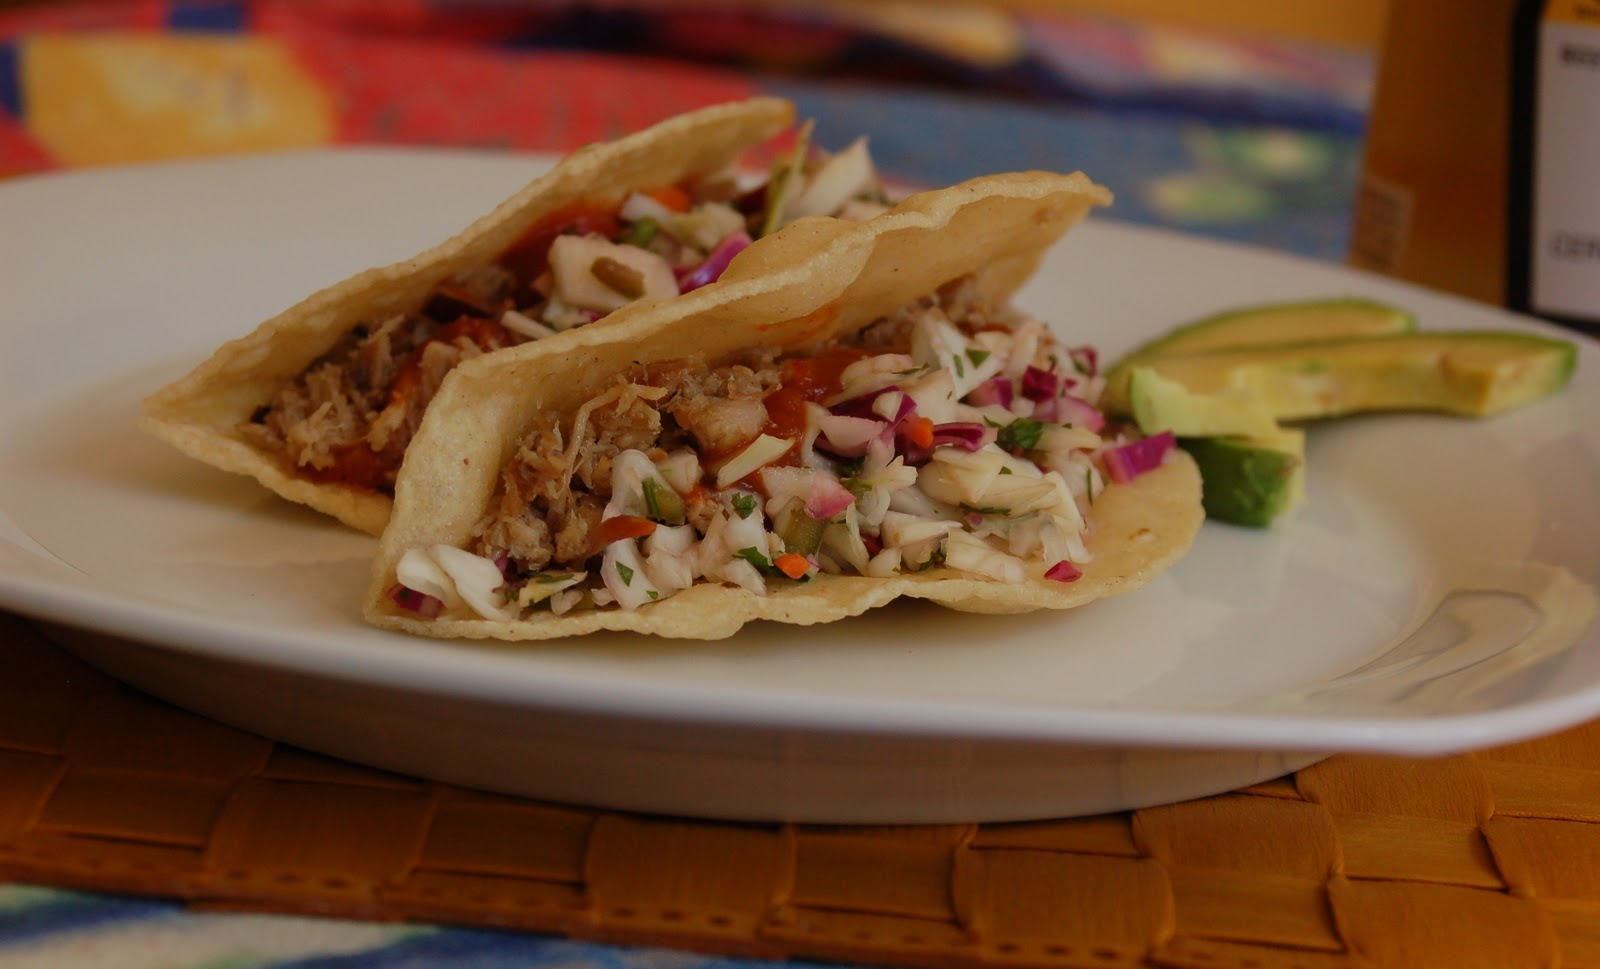 ... tacos white duck taco shop fish no waste tacos de carnitas carnitas